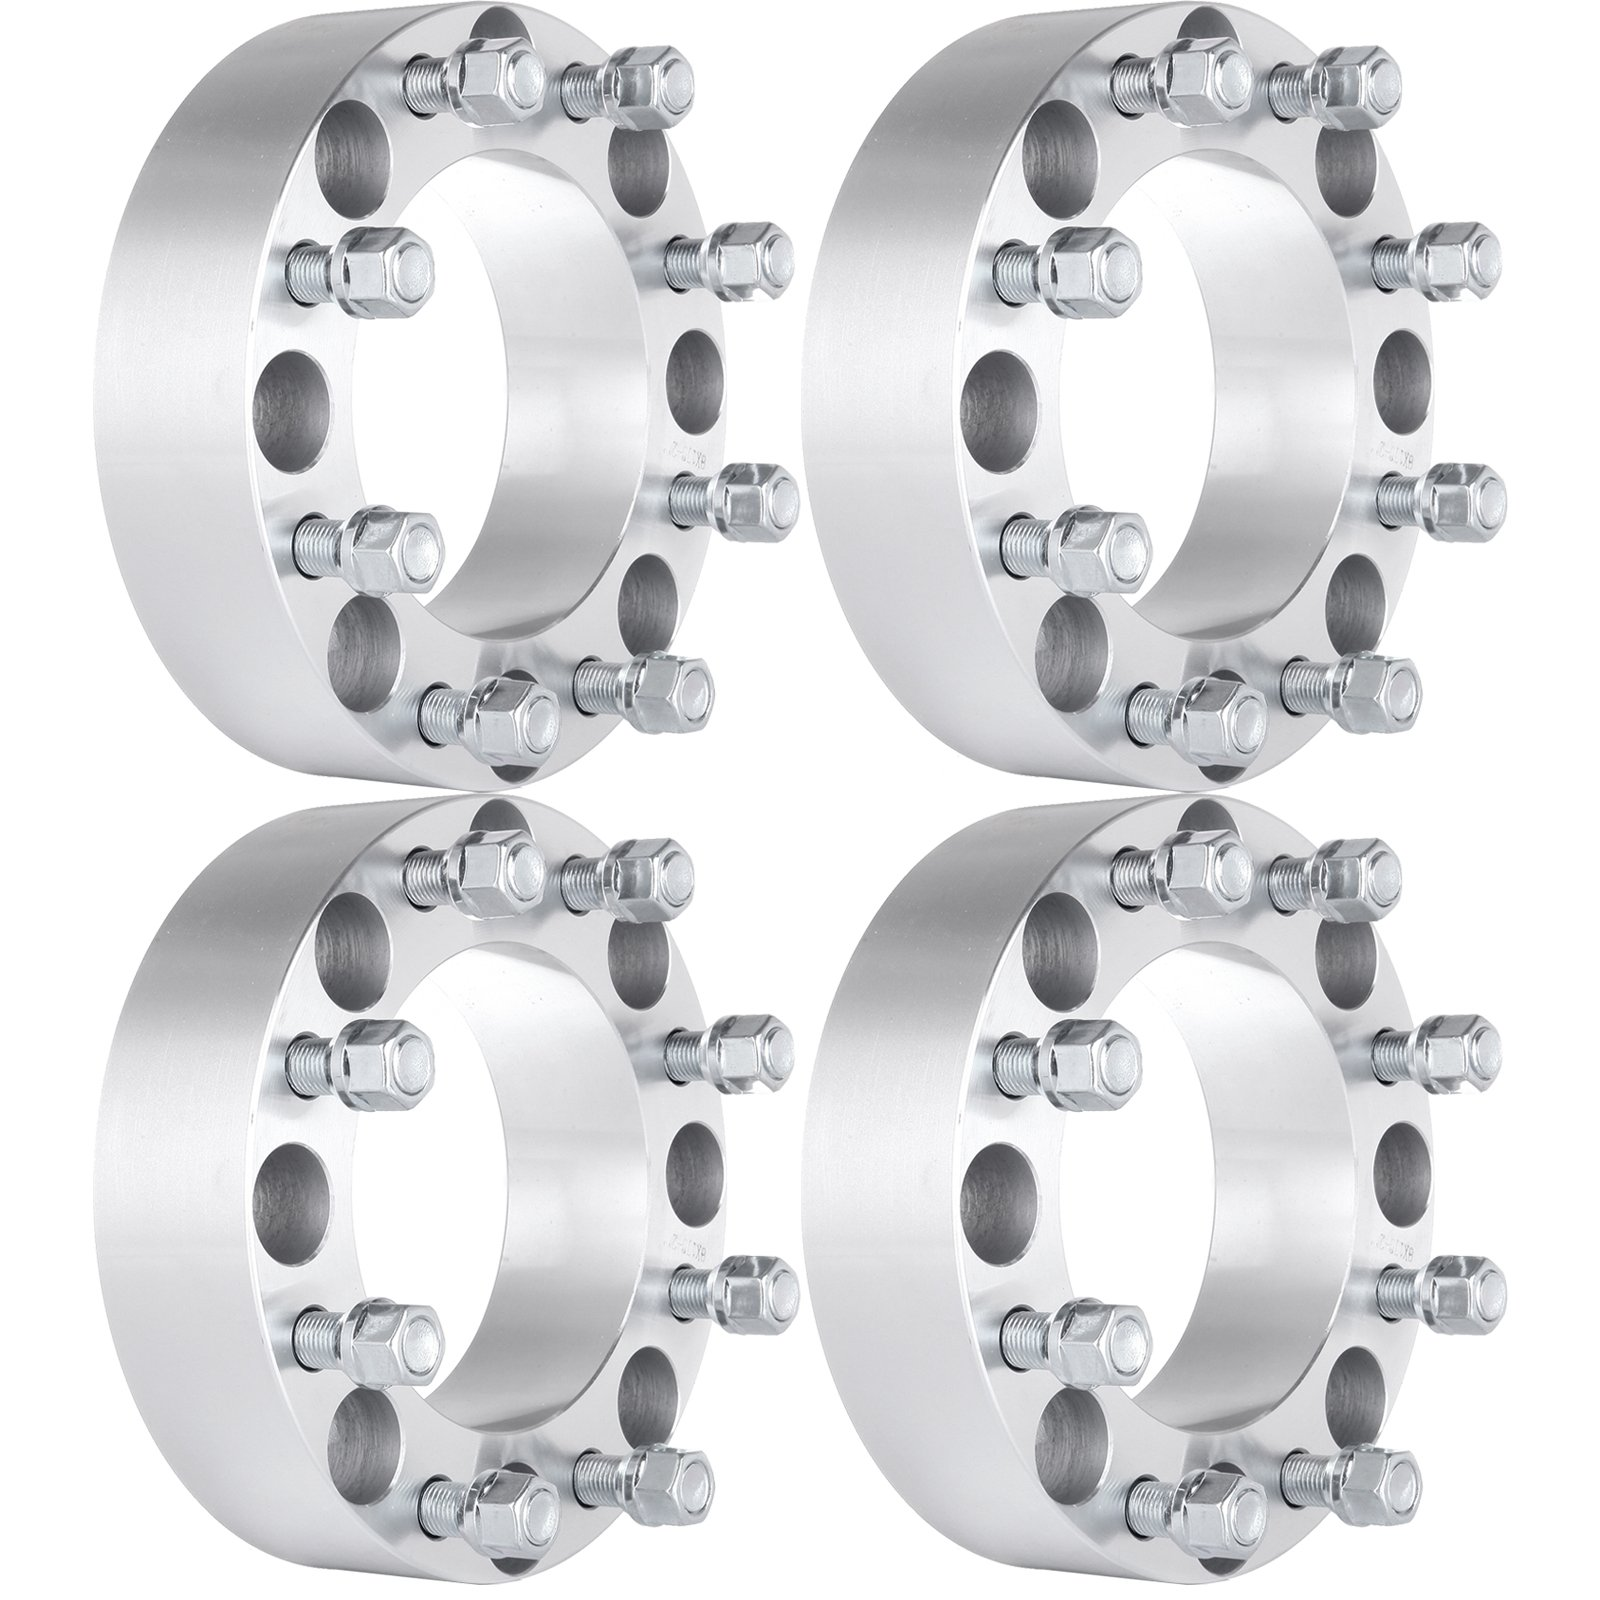 ECCPP Wheel Spacers 8 Lugs 4 PCS 2 Inch 50mm Thick 8x170 to 8x170 125mm CB for 2003-2015 Ford F-250 Super Duty F-350 Super Duty